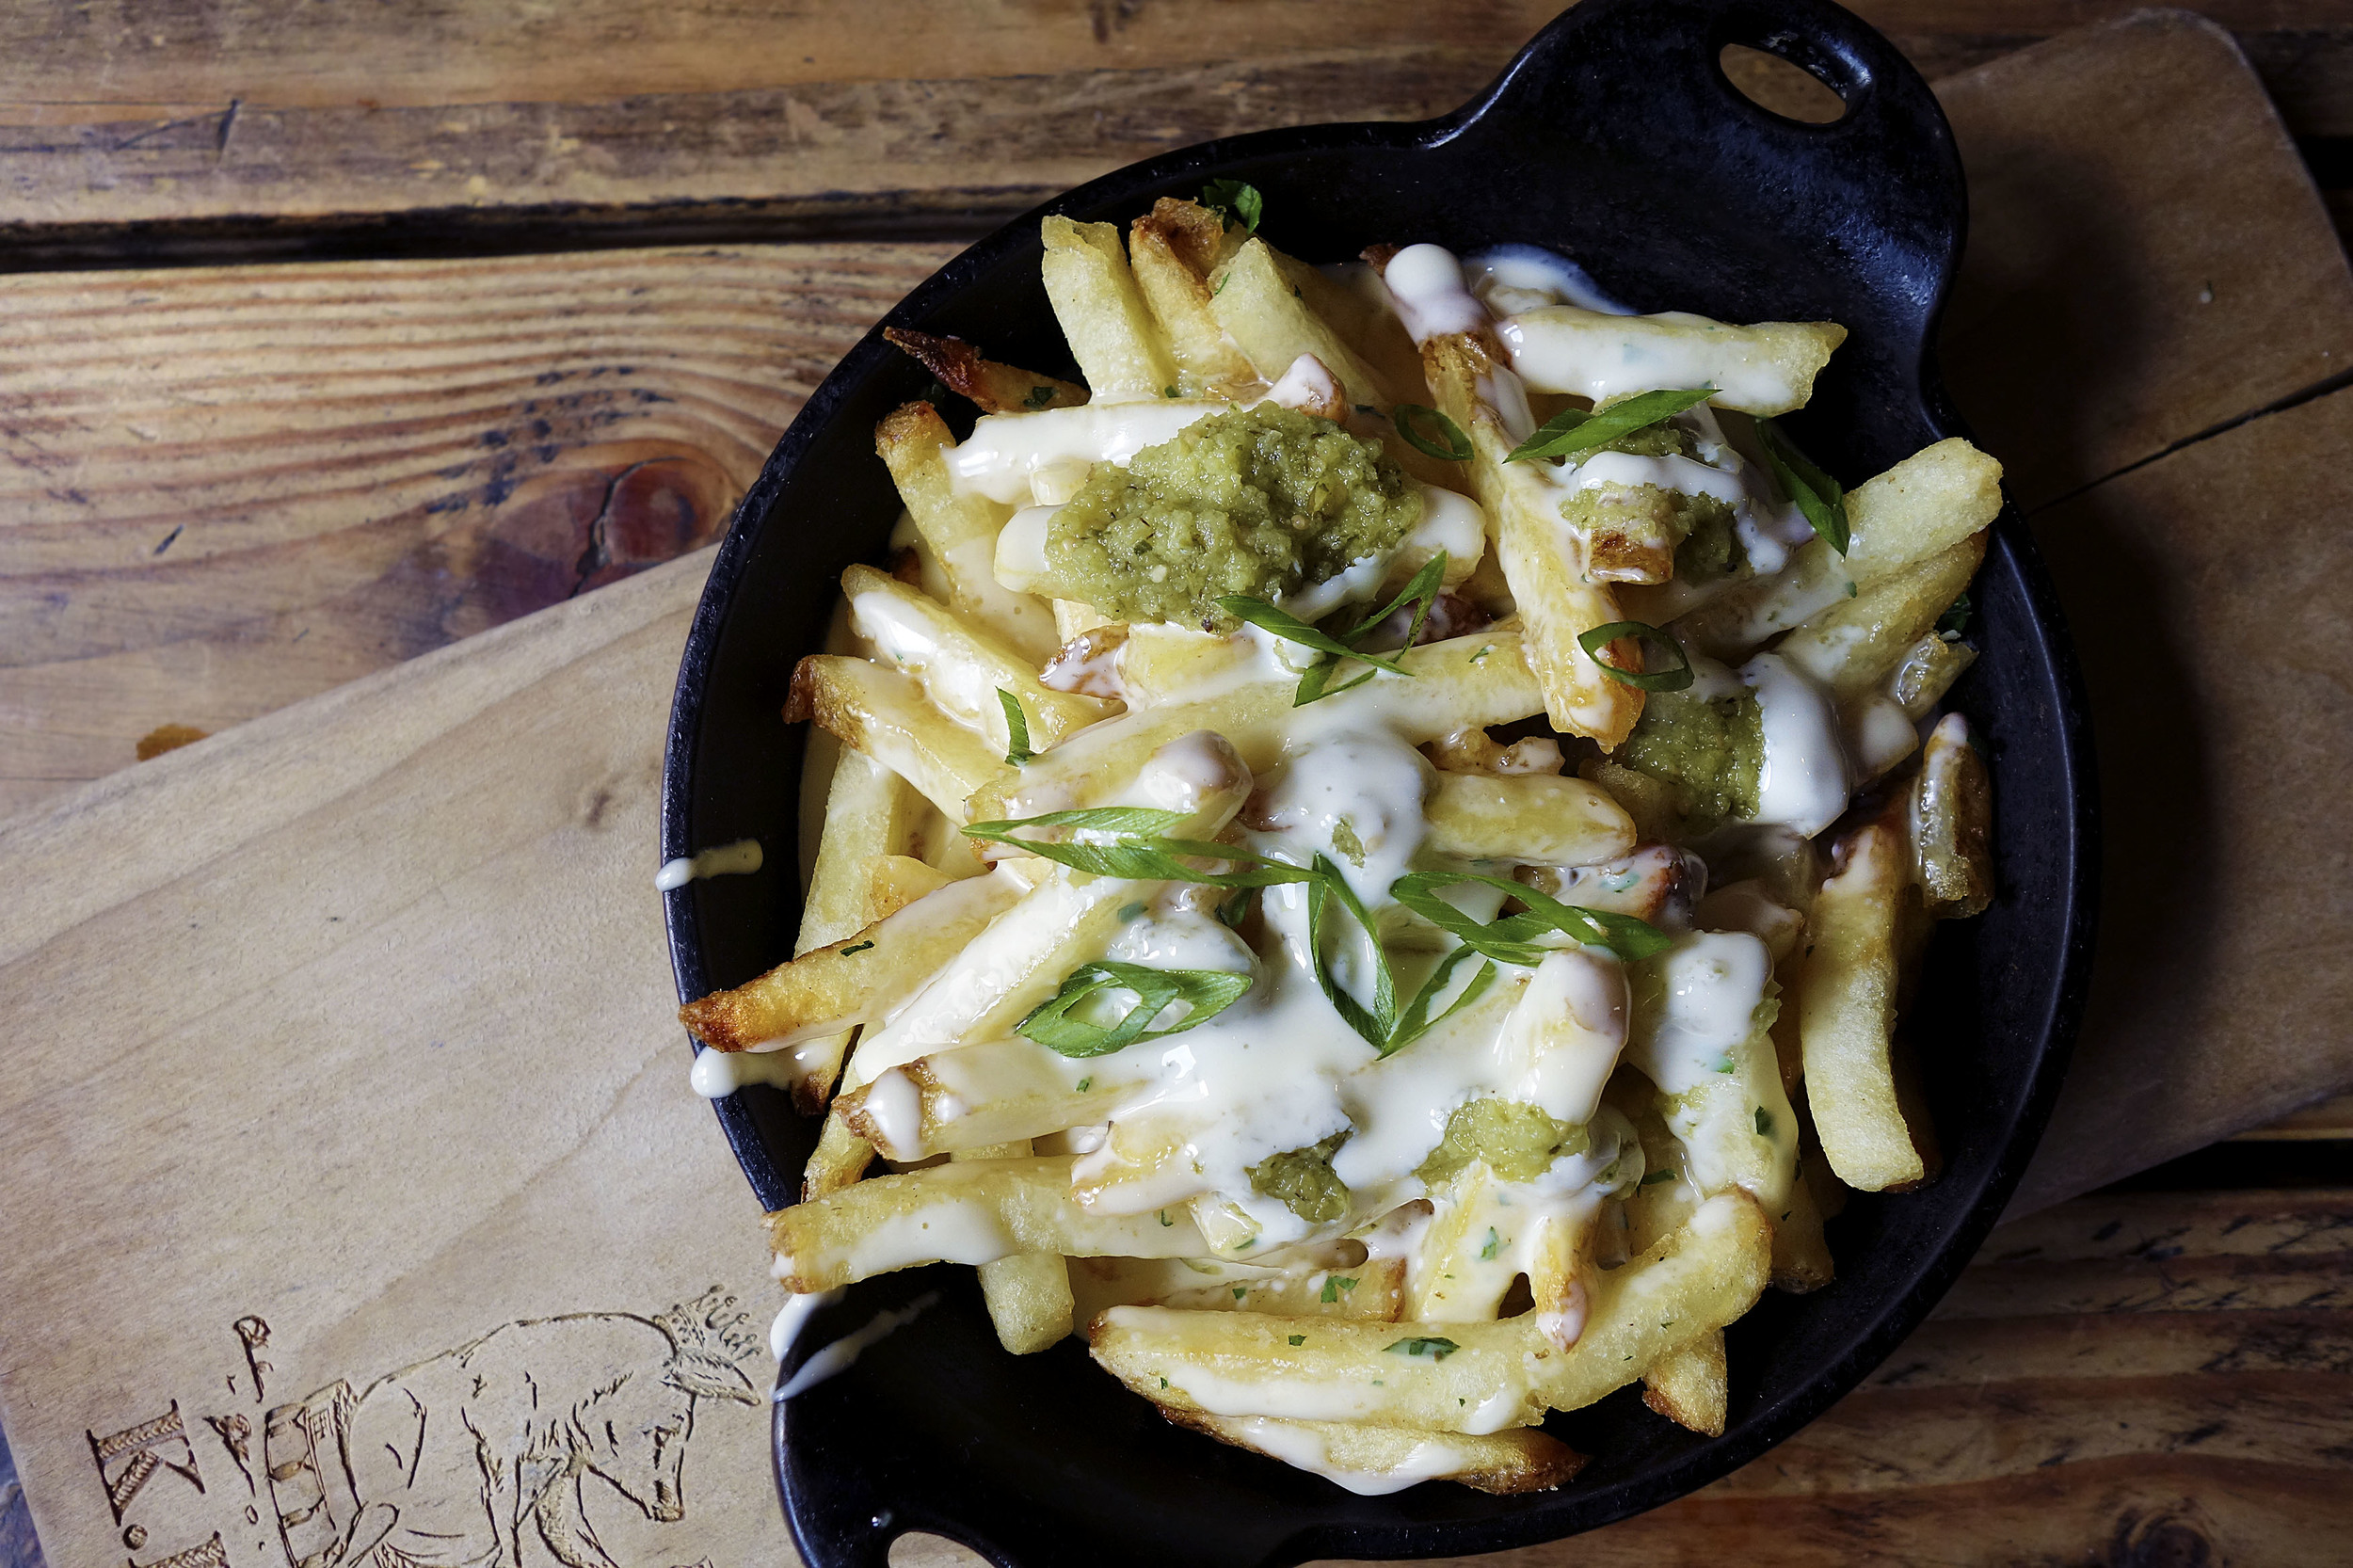 Fries with Cheese whiz and spicy verde